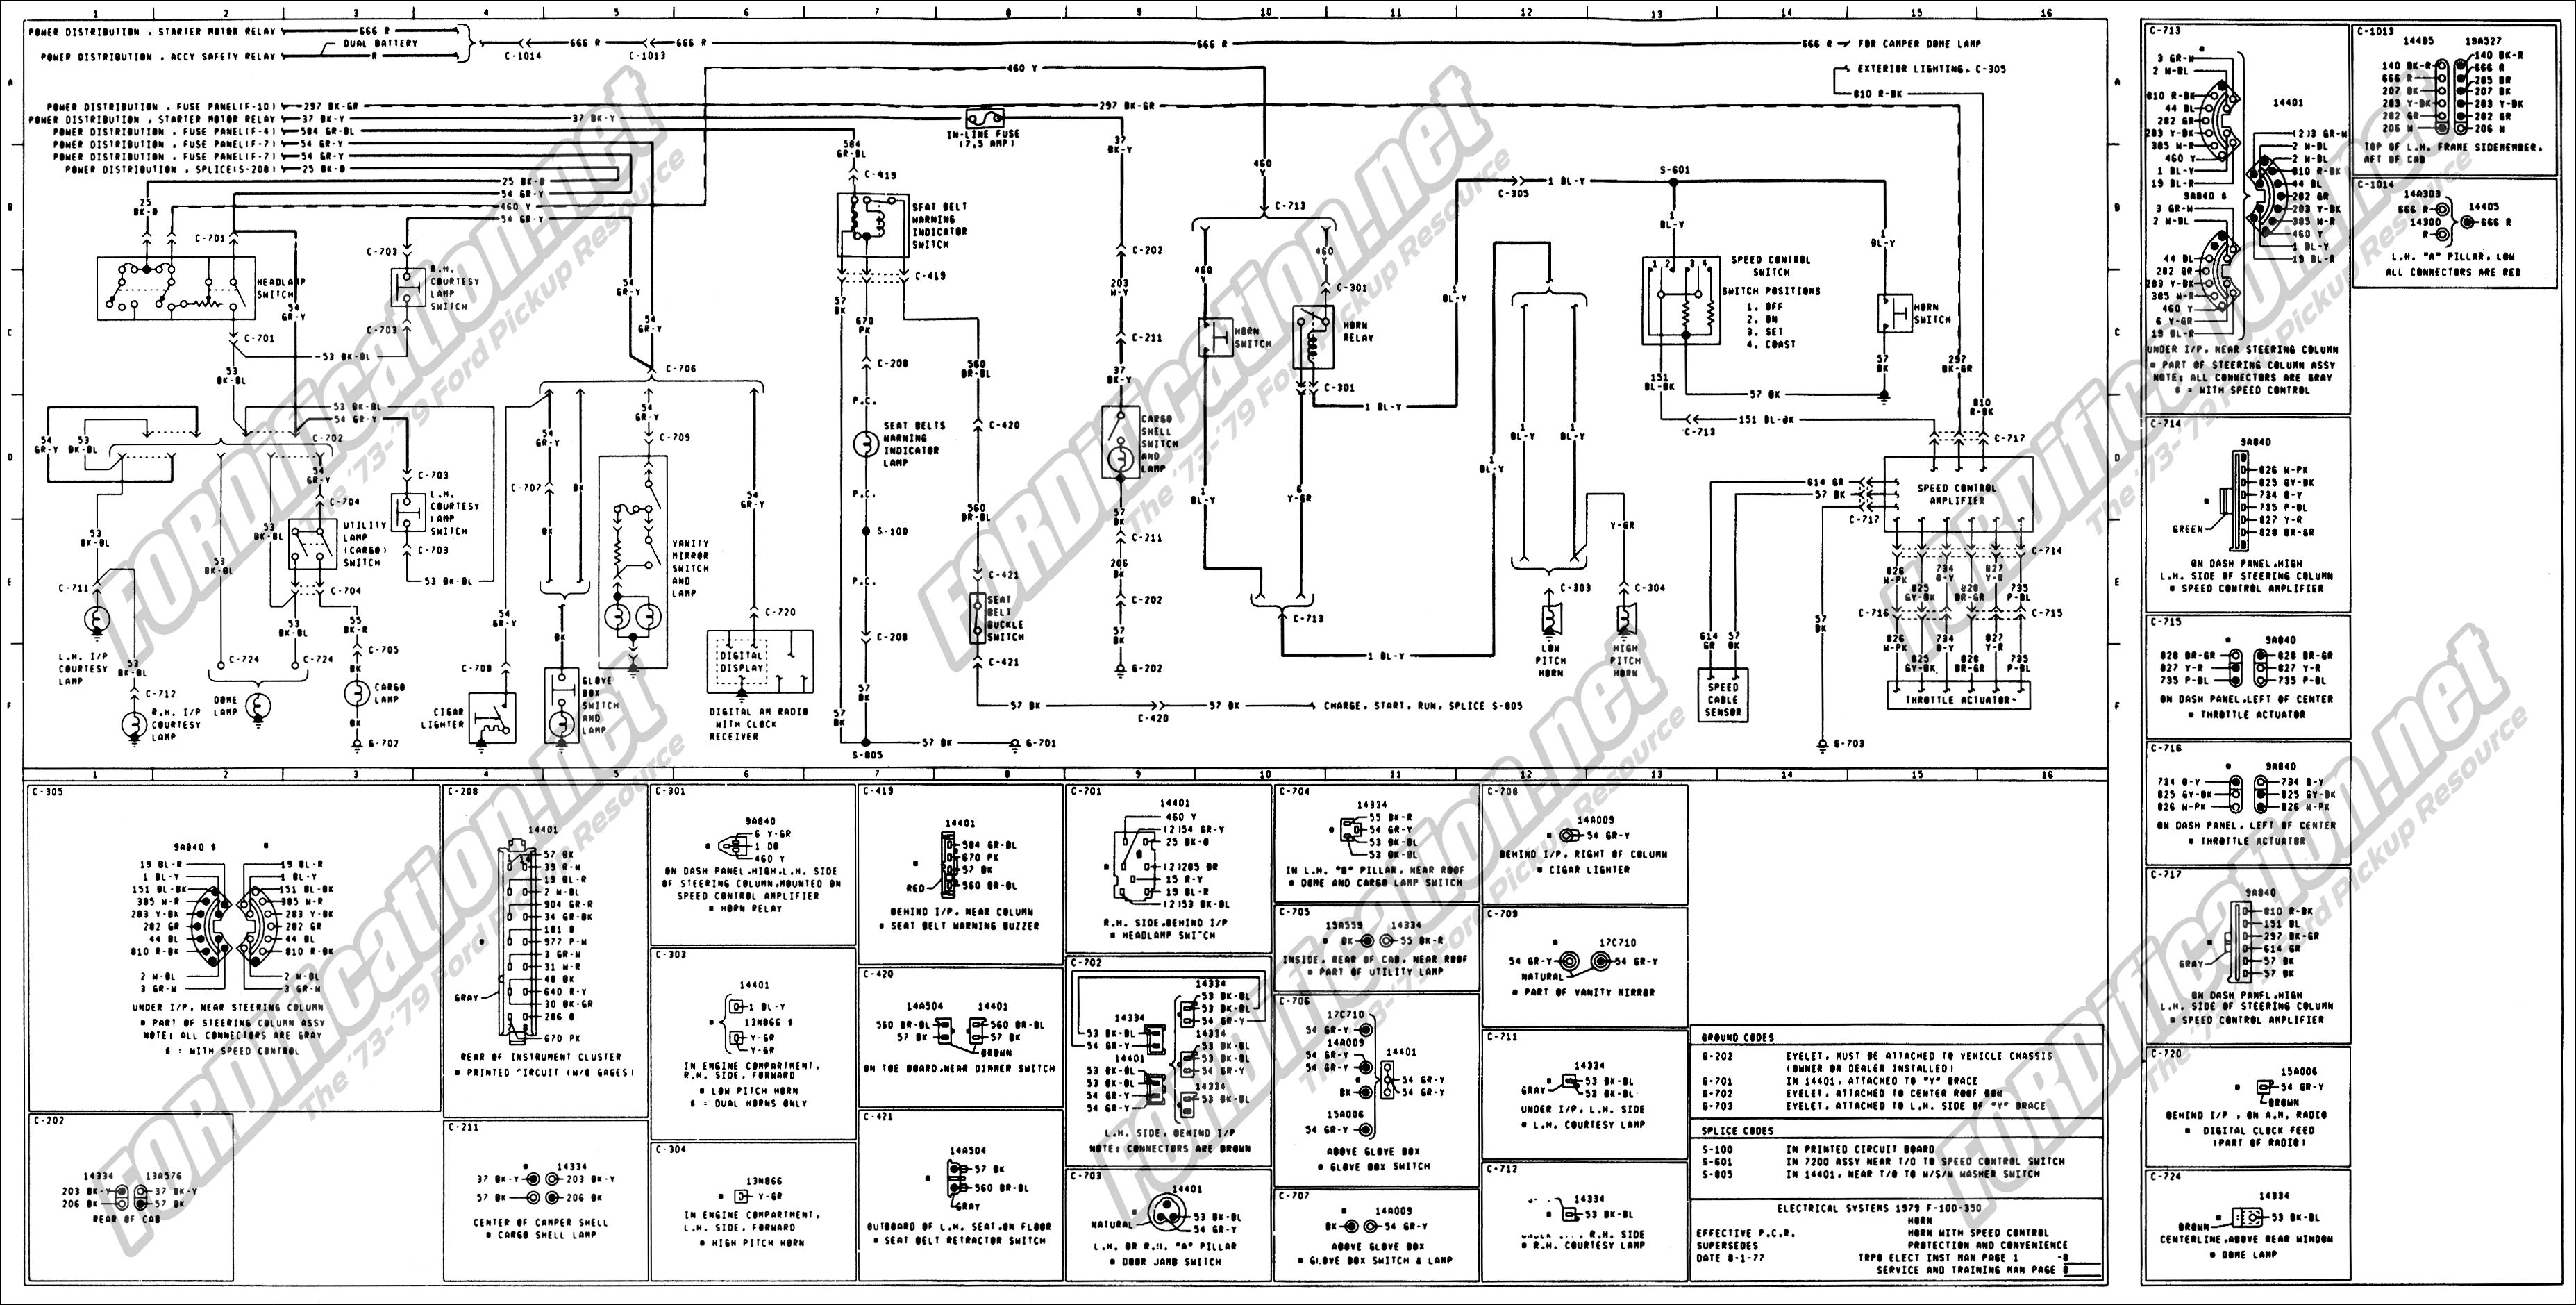 wiring_79master_8of9 wiring diagram ford f250 readingrat net 1984 ford f250 wiring diagram at gsmportal.co